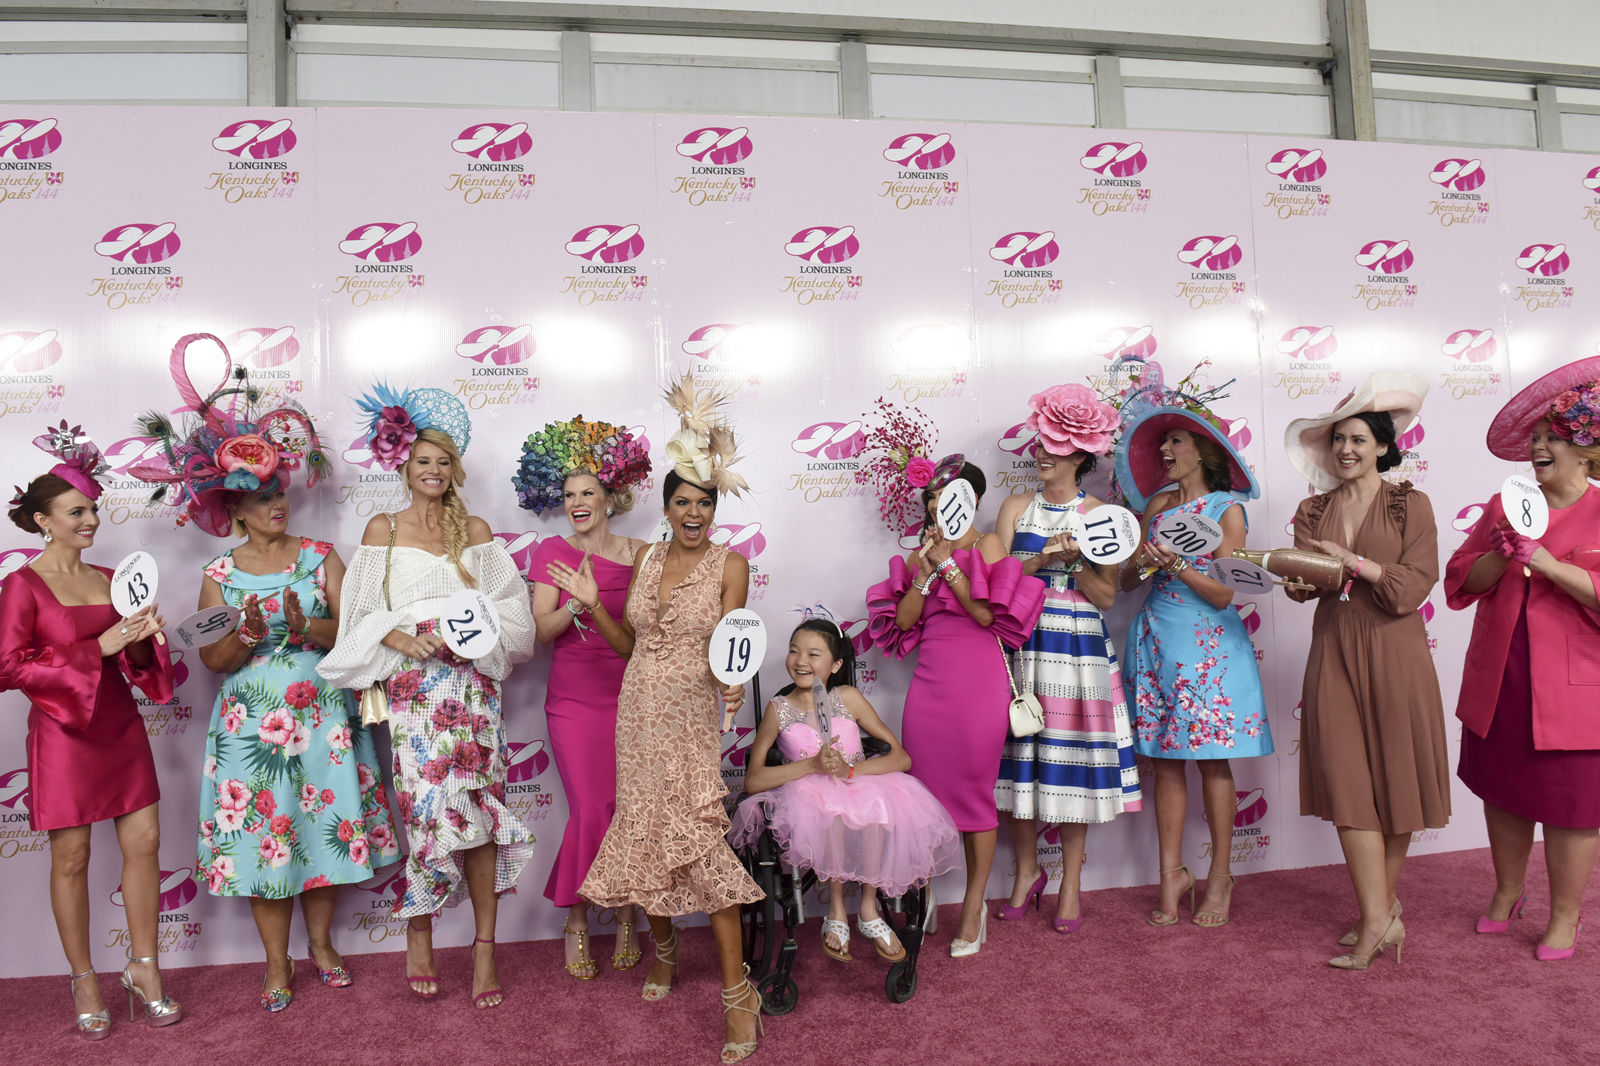 IMAGE DISTRIBUTED FOR LONGINES - Meghana Rajadhyaksha, of Miami, reacts after winning the Longines Prize for Elegance fashion contest on Longines Kentucky Oaks Day, Friday, May 4, 2018 at Churchill Downs in Louisville, Ky. Longines, the Swiss watch manufacturer known for its luxury timepieces, is the Official Watch and Timekeeper of the 144th annual Kentucky Derby. (Photo by Diane Bondareff/Invision for Longines/AP Images)